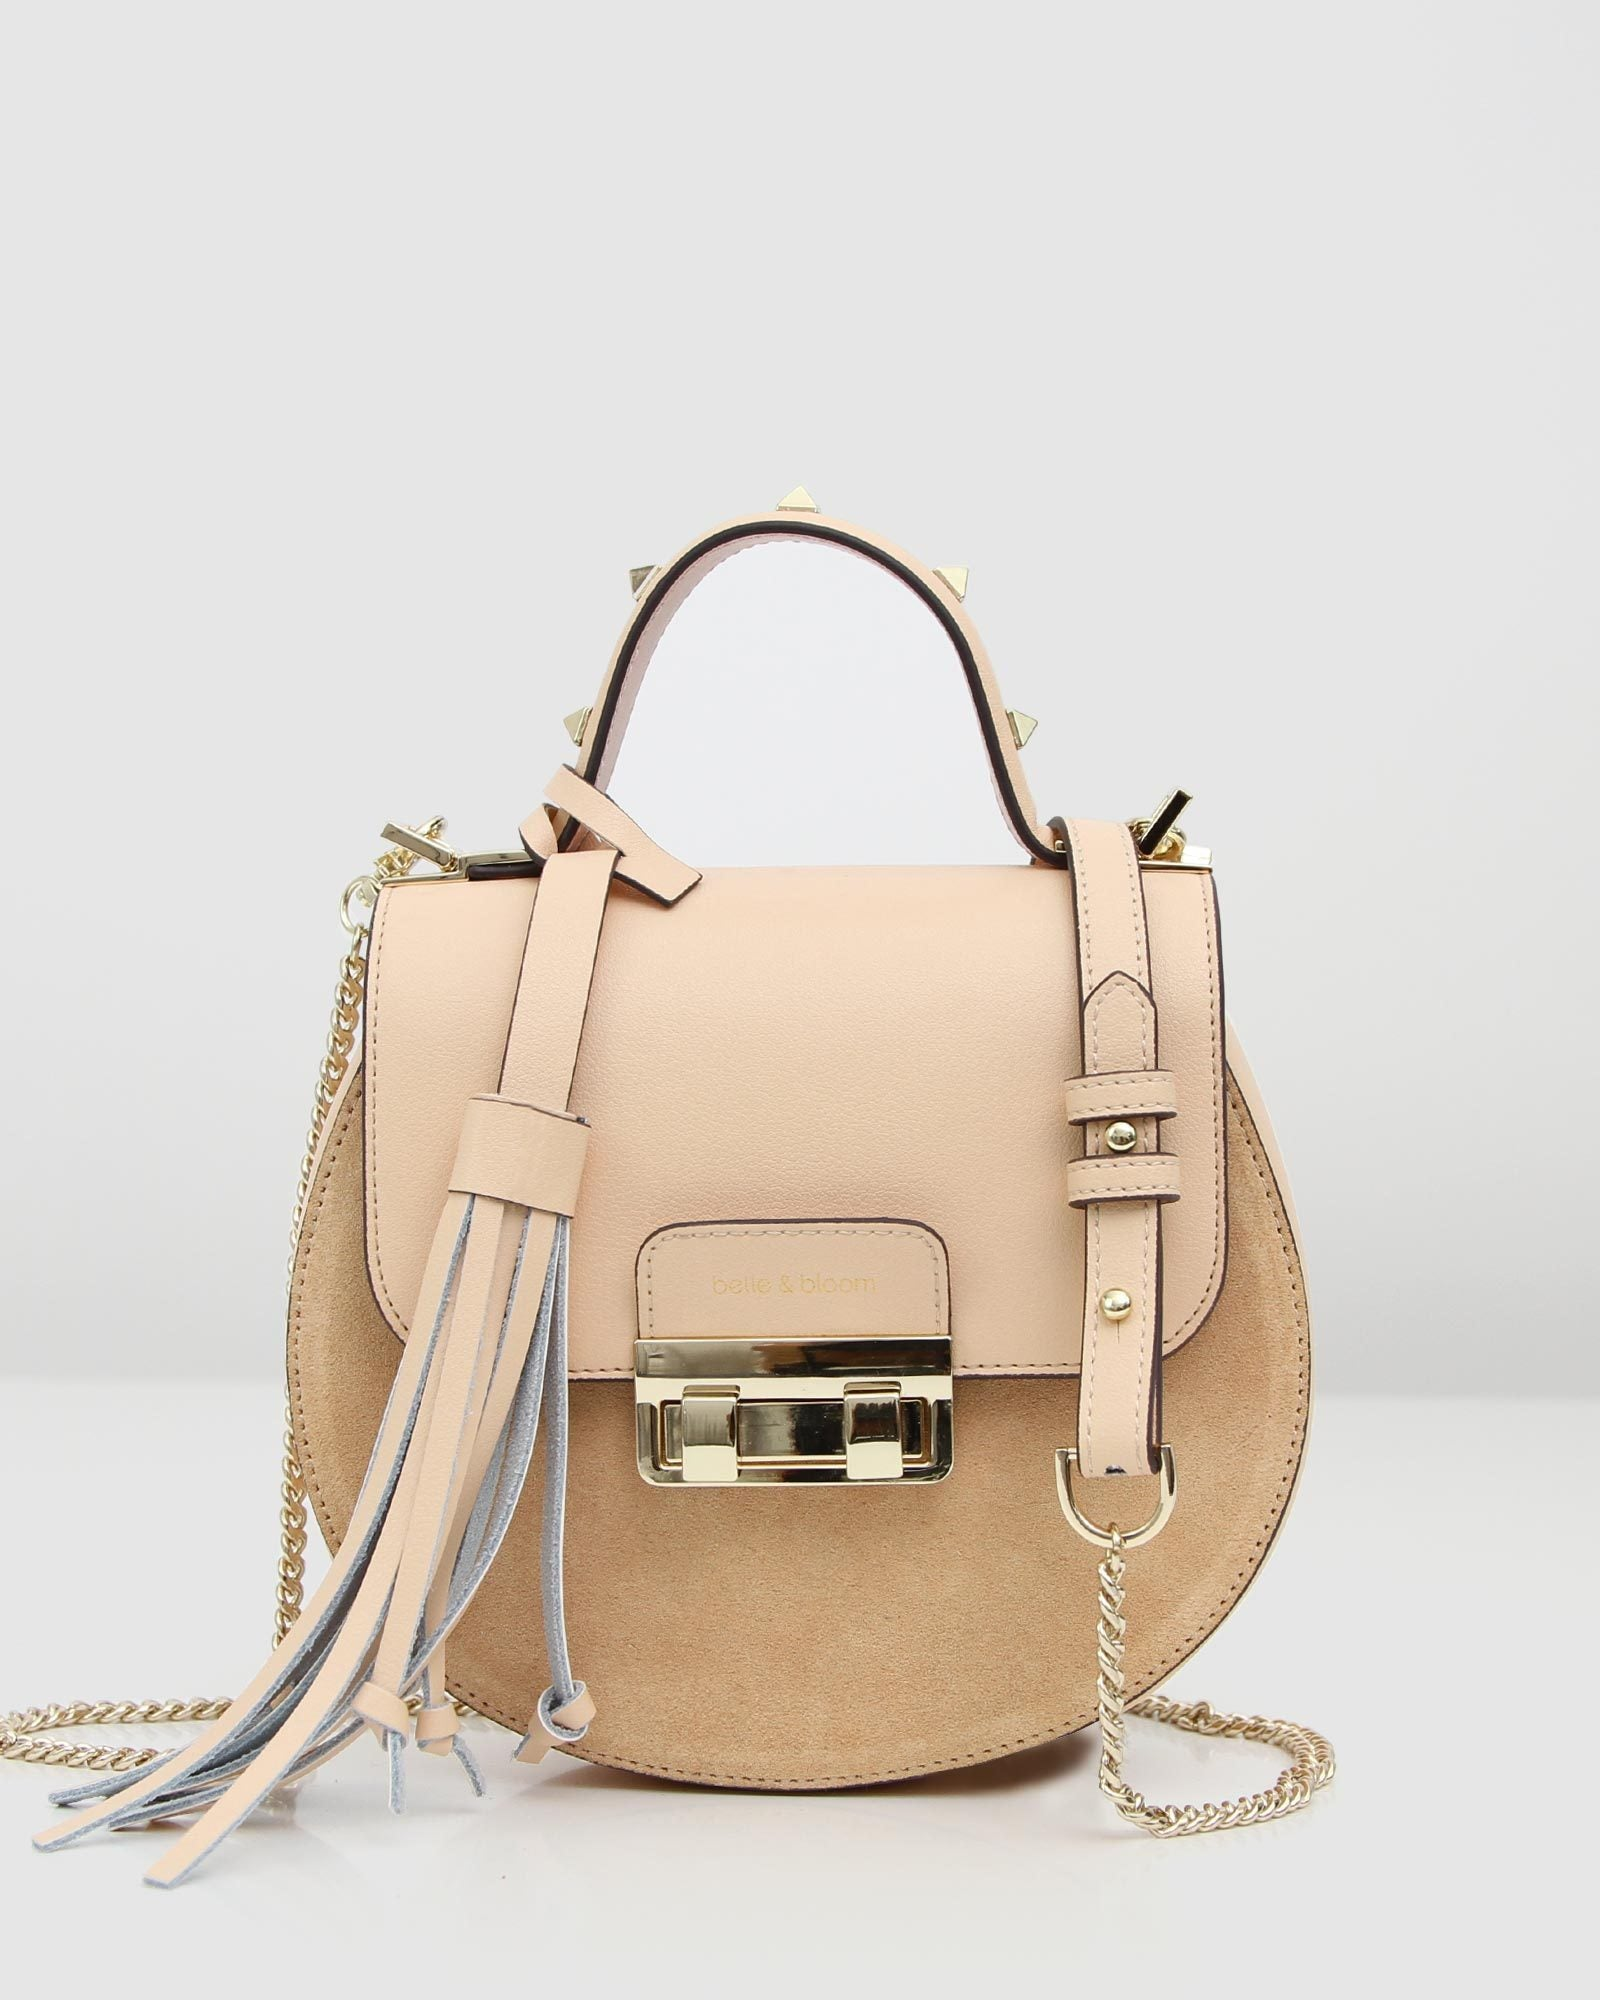 milk-tea-leather-and-suede-bag-by-belle-and-bloom.jpg